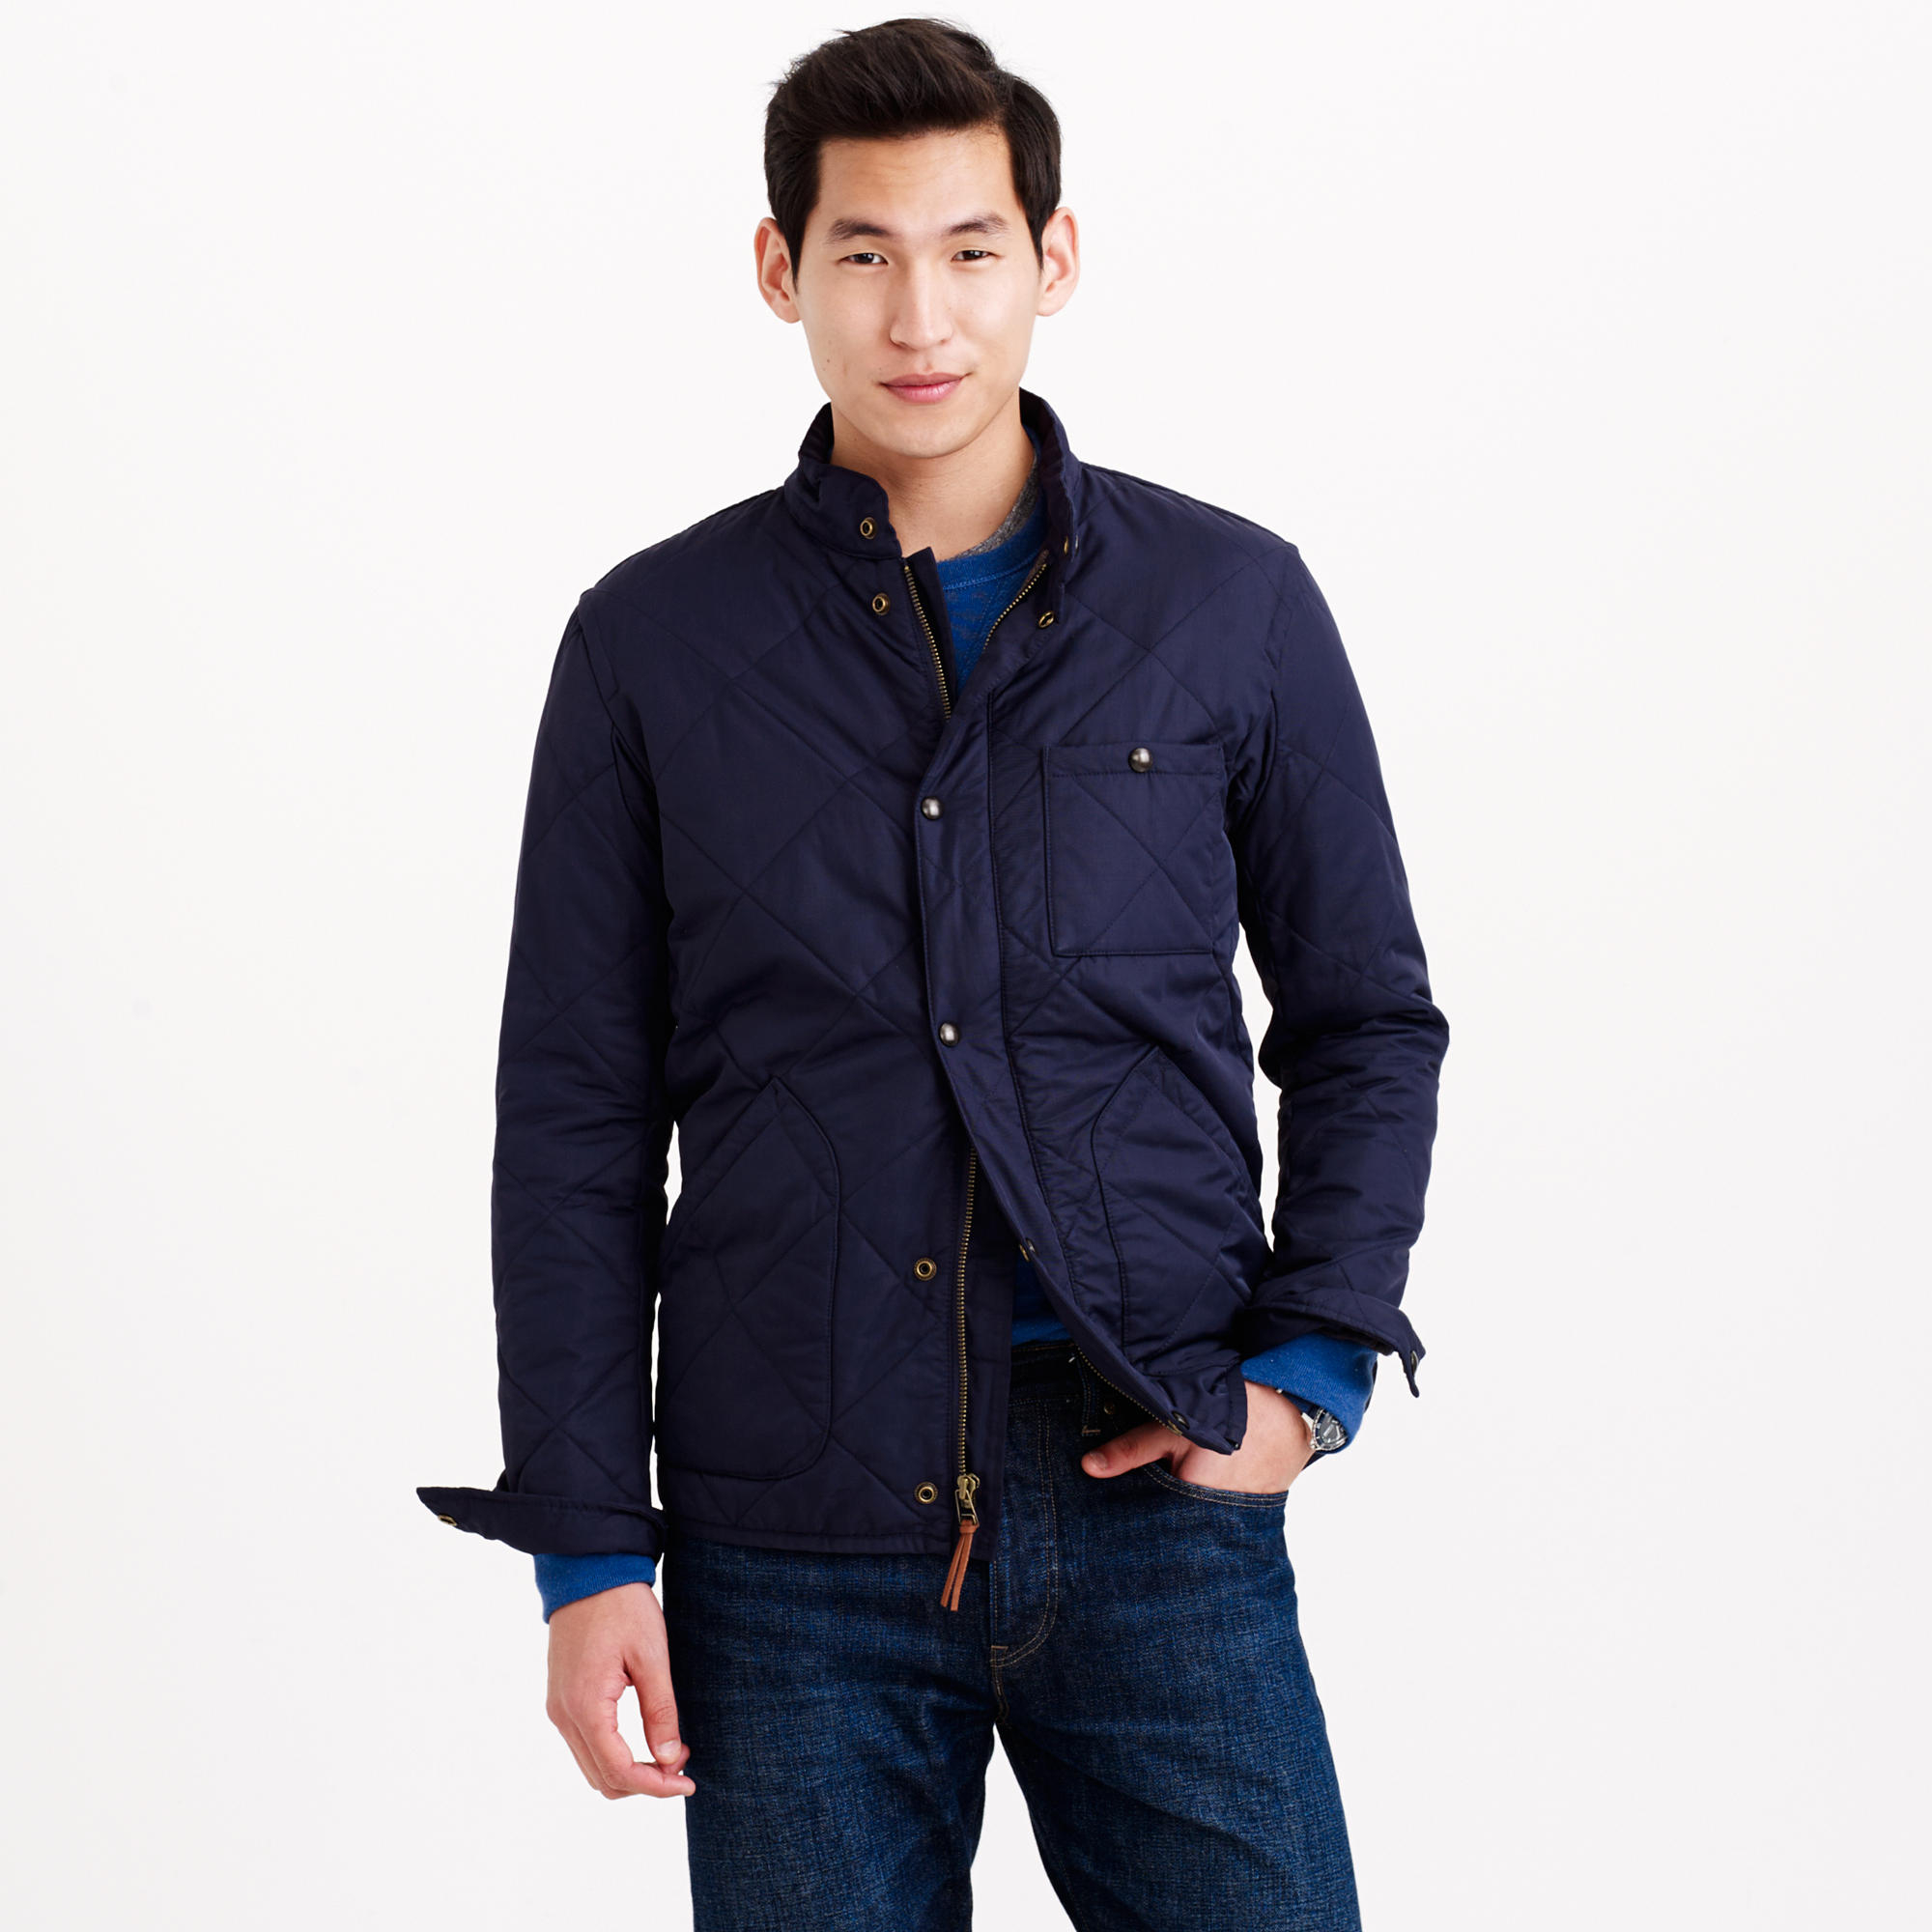 J Crew Sussex Quilted Jacket In Blue For Men Lyst